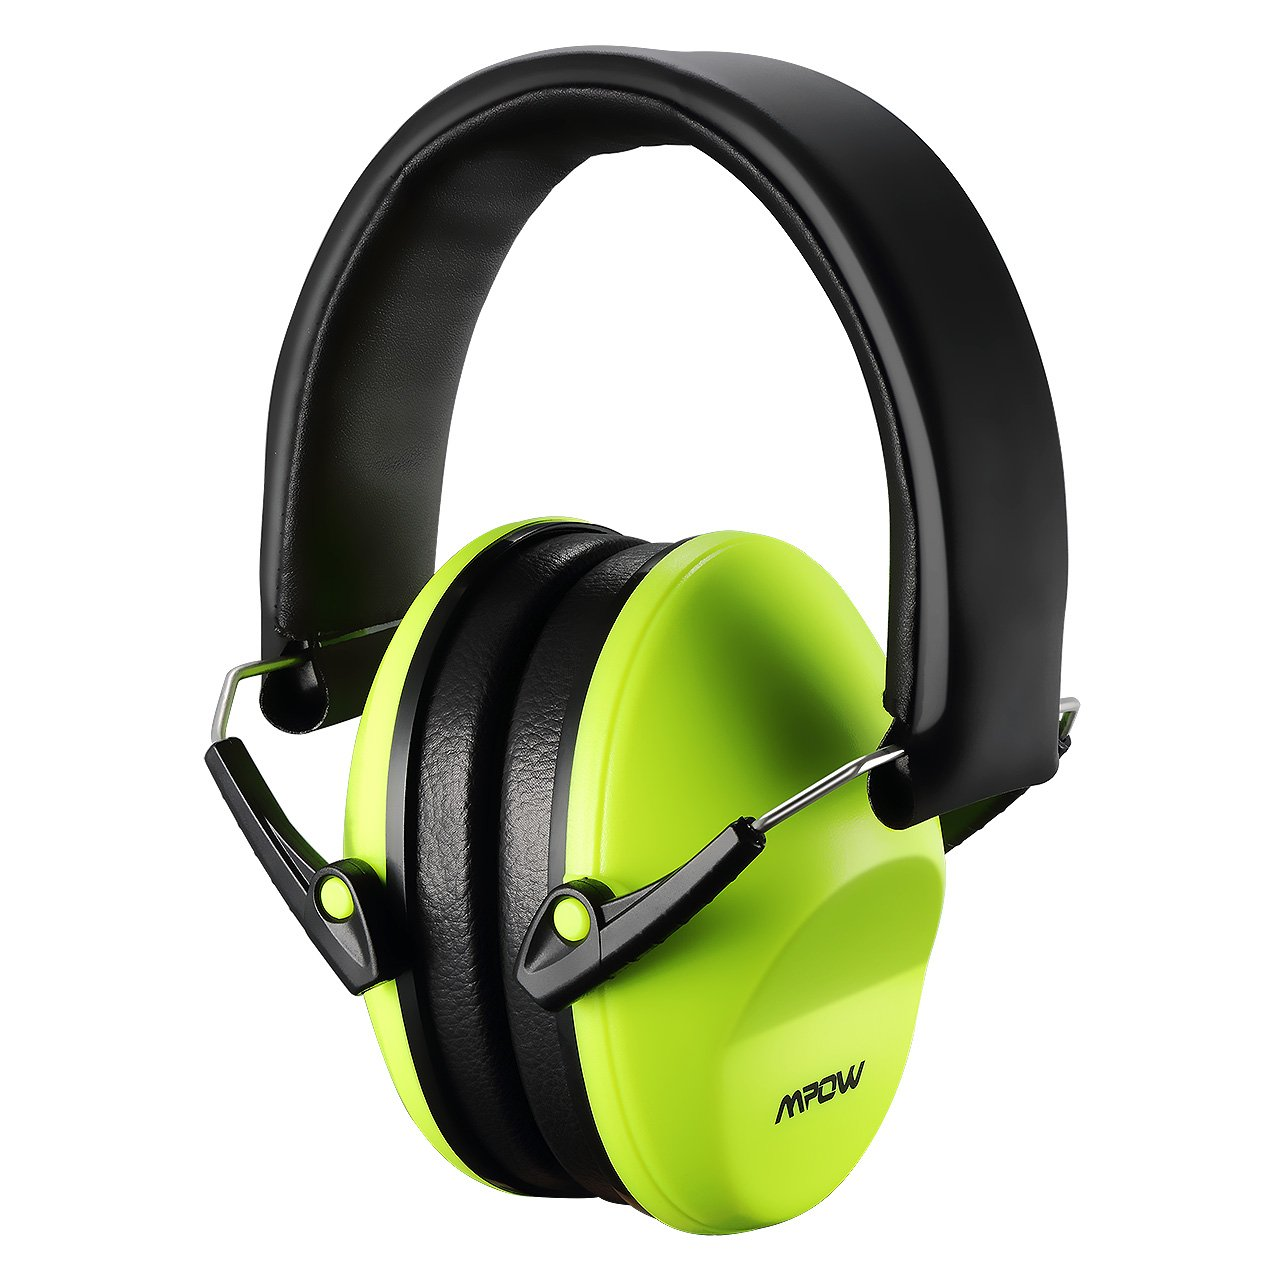 Mpow 068 Kids Ear Protection Safety Ear Muffs, NRR 25dB Noise Reduction Hearing Protection for Kids, Toddler Ear Protection for Shooting Range Hunting Season for Kids Toddlers Children (Green)